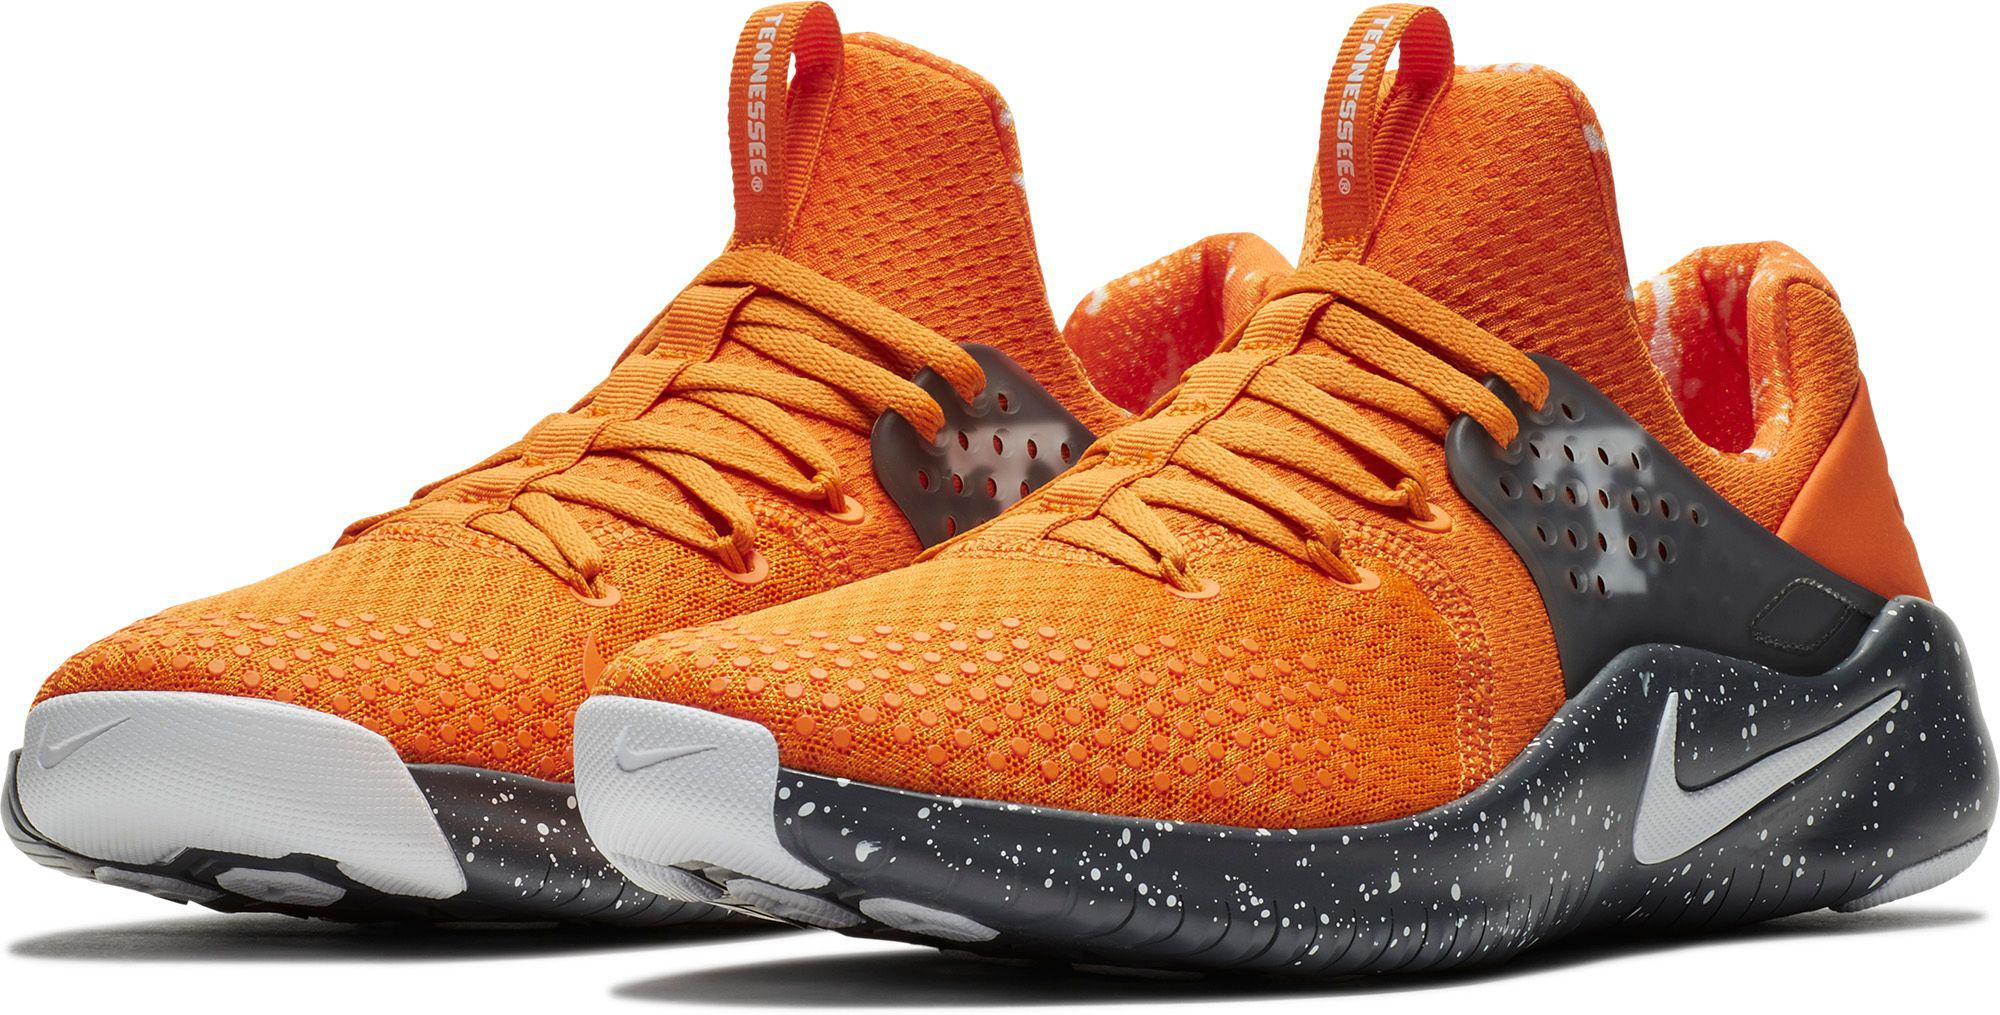 17a235152517 Lyst - Nike Free Tr 8 Tennessee Training Shoes in Orange for Men